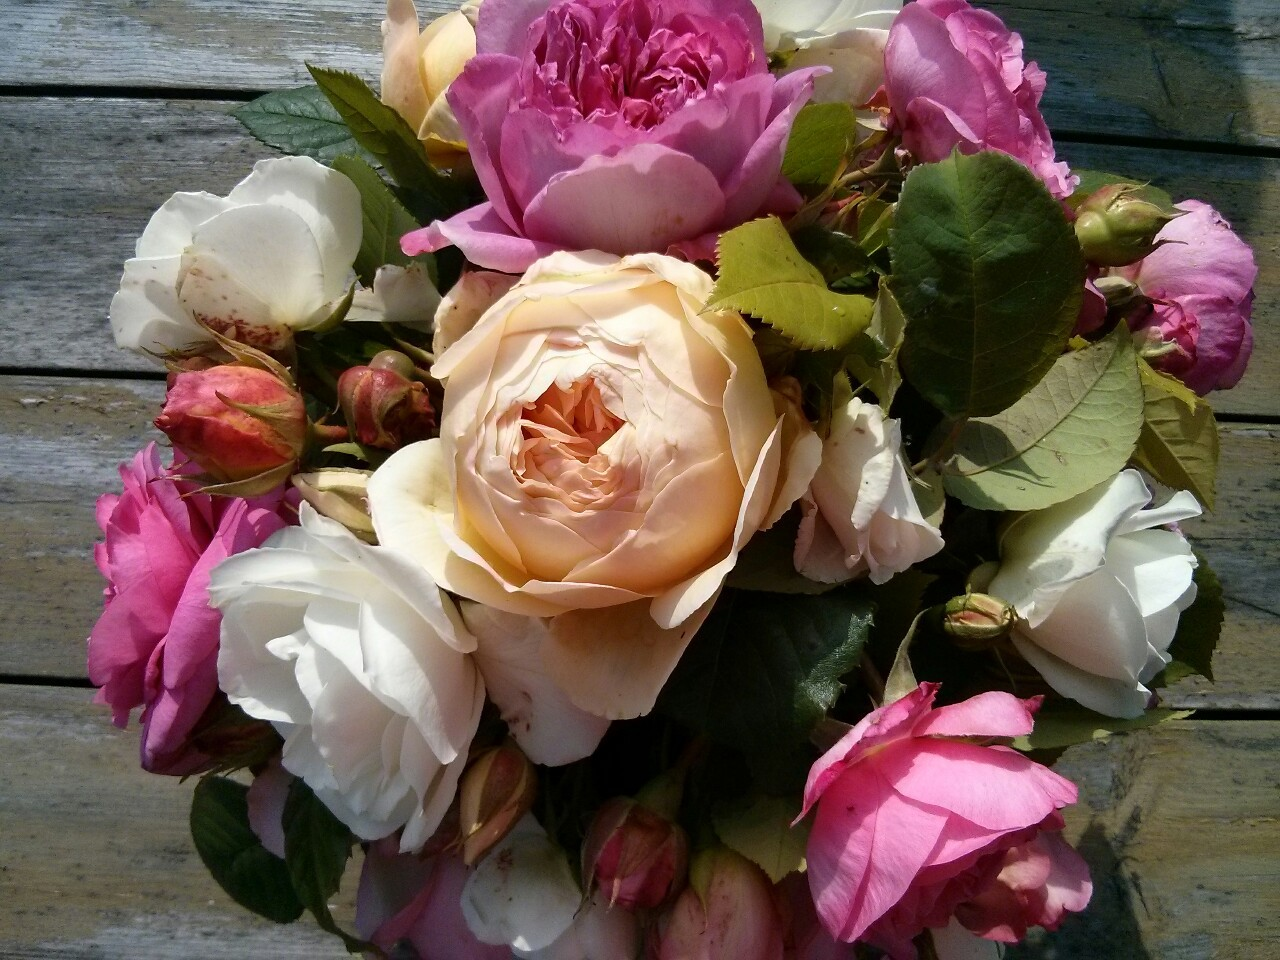 A vase of roses picked from the garden and the allotment; unfortunately I can't show you the fantastic scent.